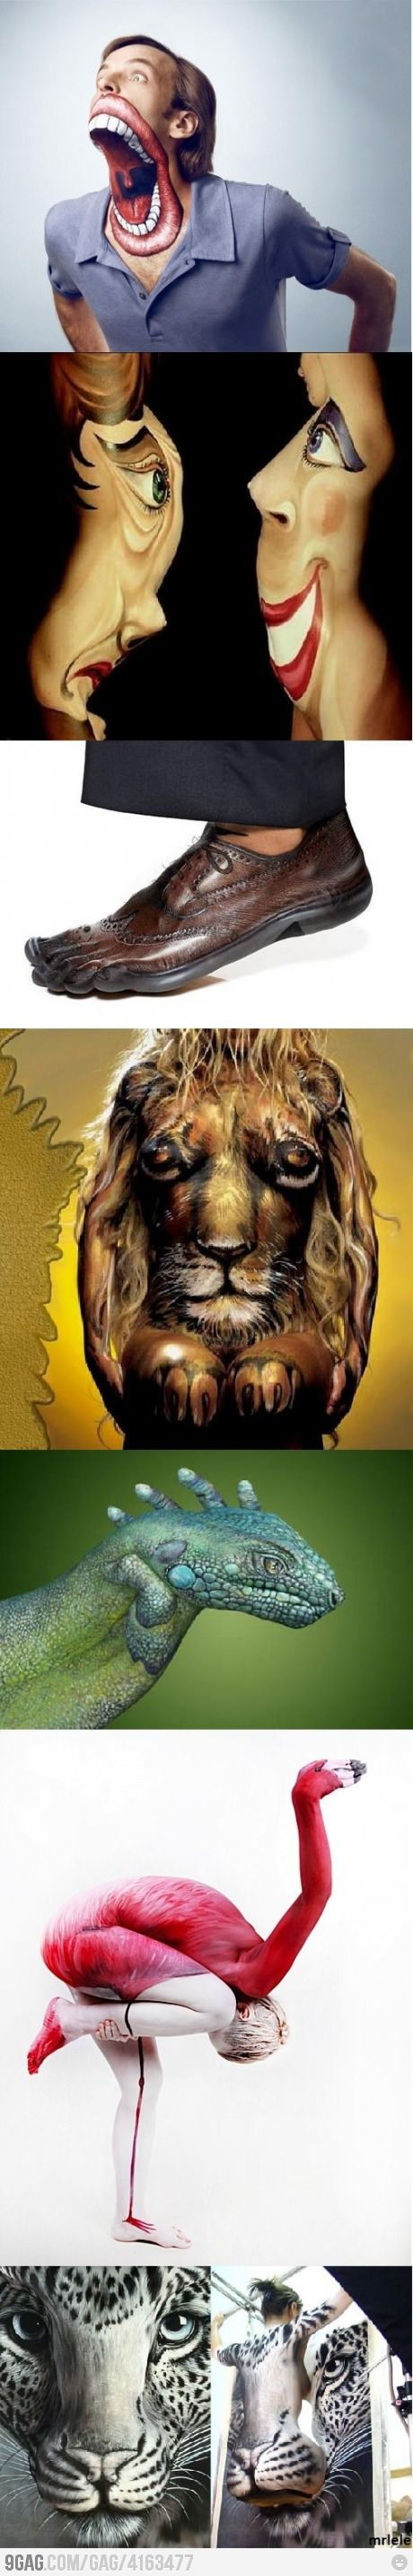 Awesome body painting illusions